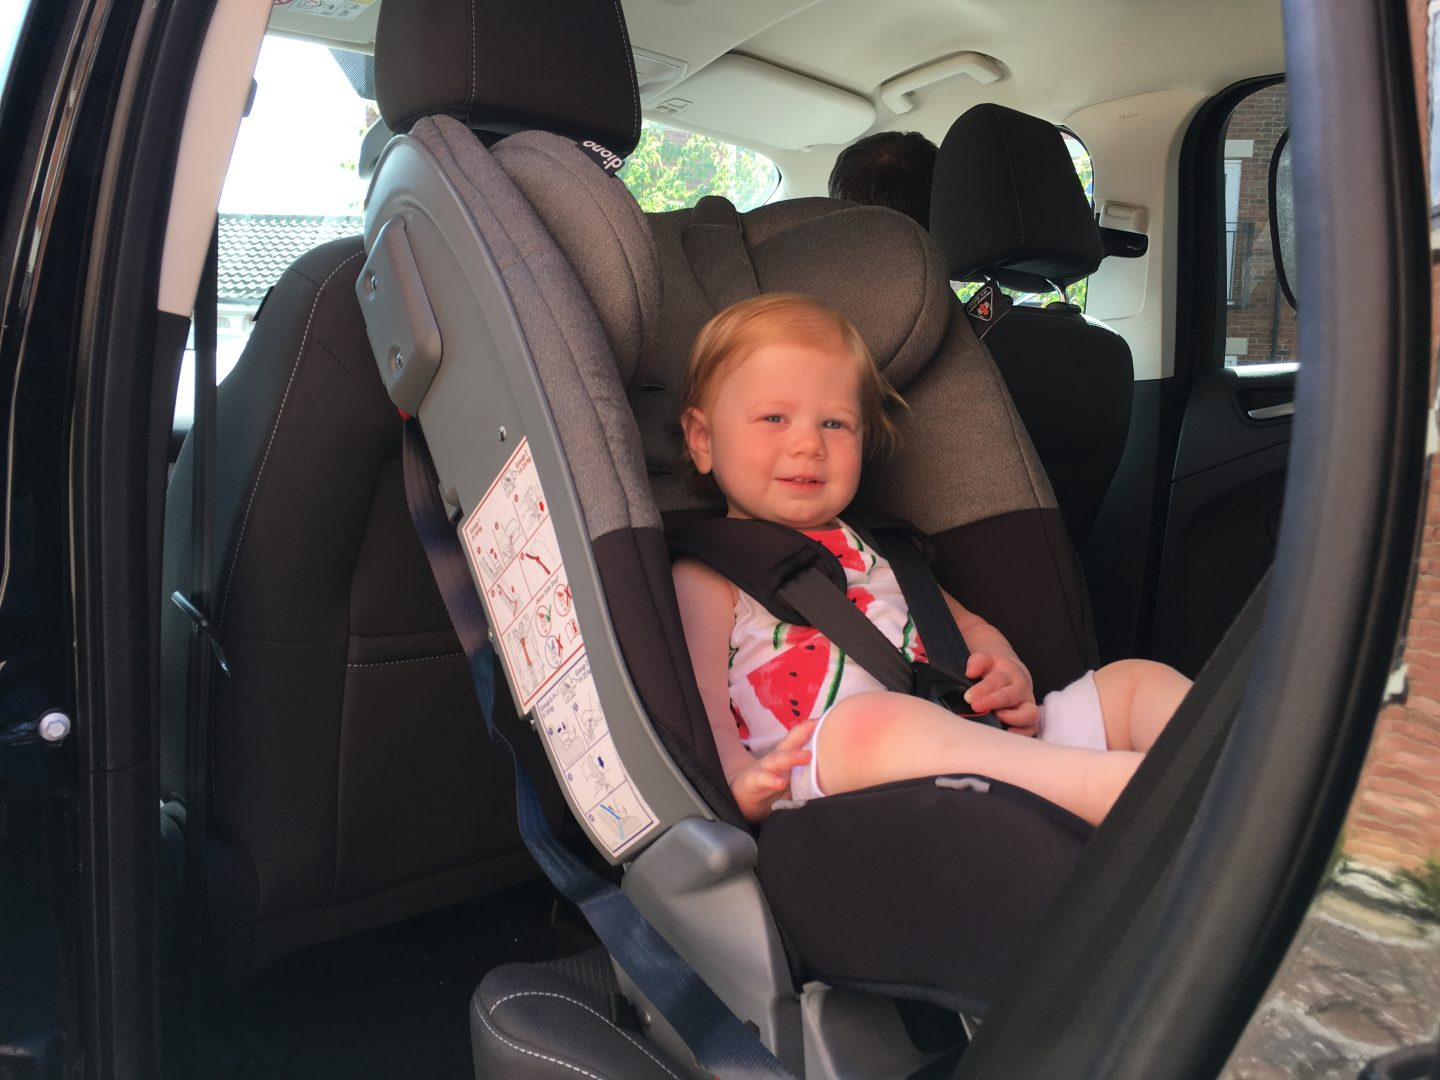 Diono Radian 5 review, extended rear facing car seat review, car seat review, birth to 25kg rear facing car seat review